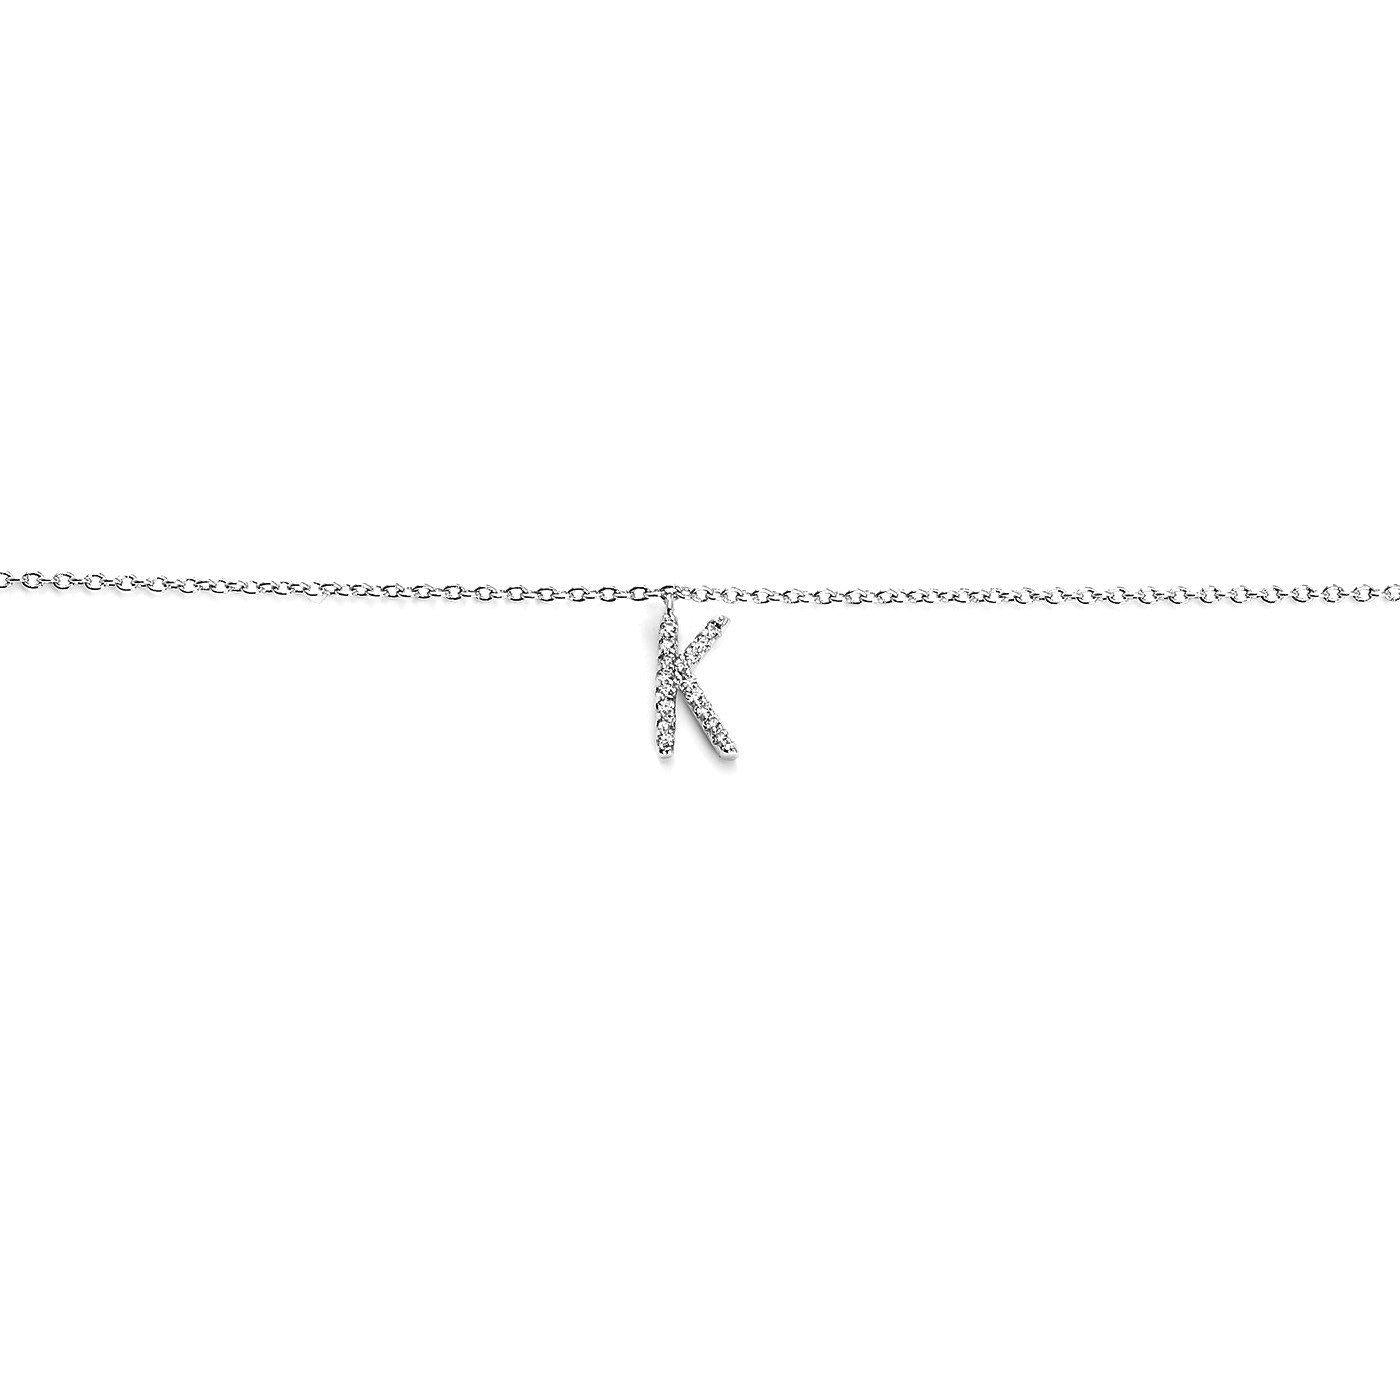 Your initial K Bracelet-Blinglane